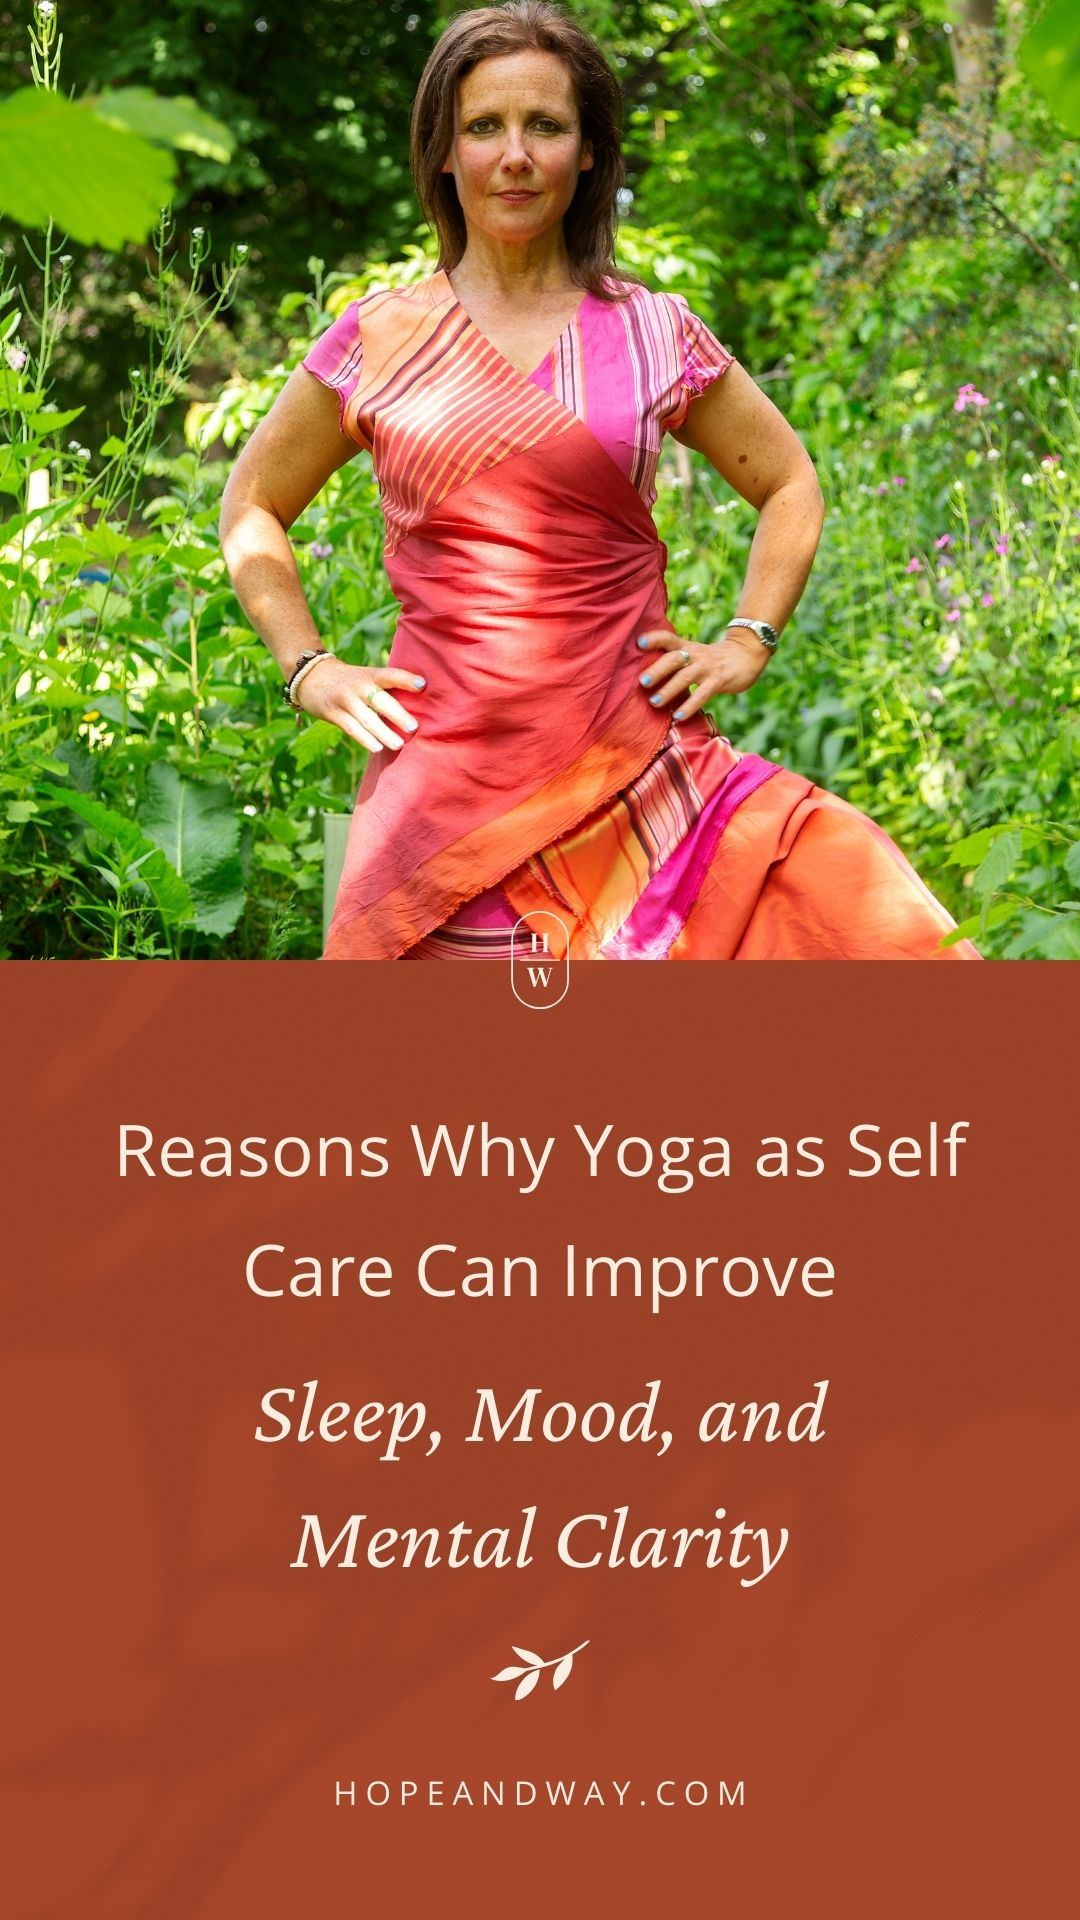 Reasons Why Yoga as Self Care Can Improve Sleep, Mood, and Mental Clarity - Interview with Naomi Schogler